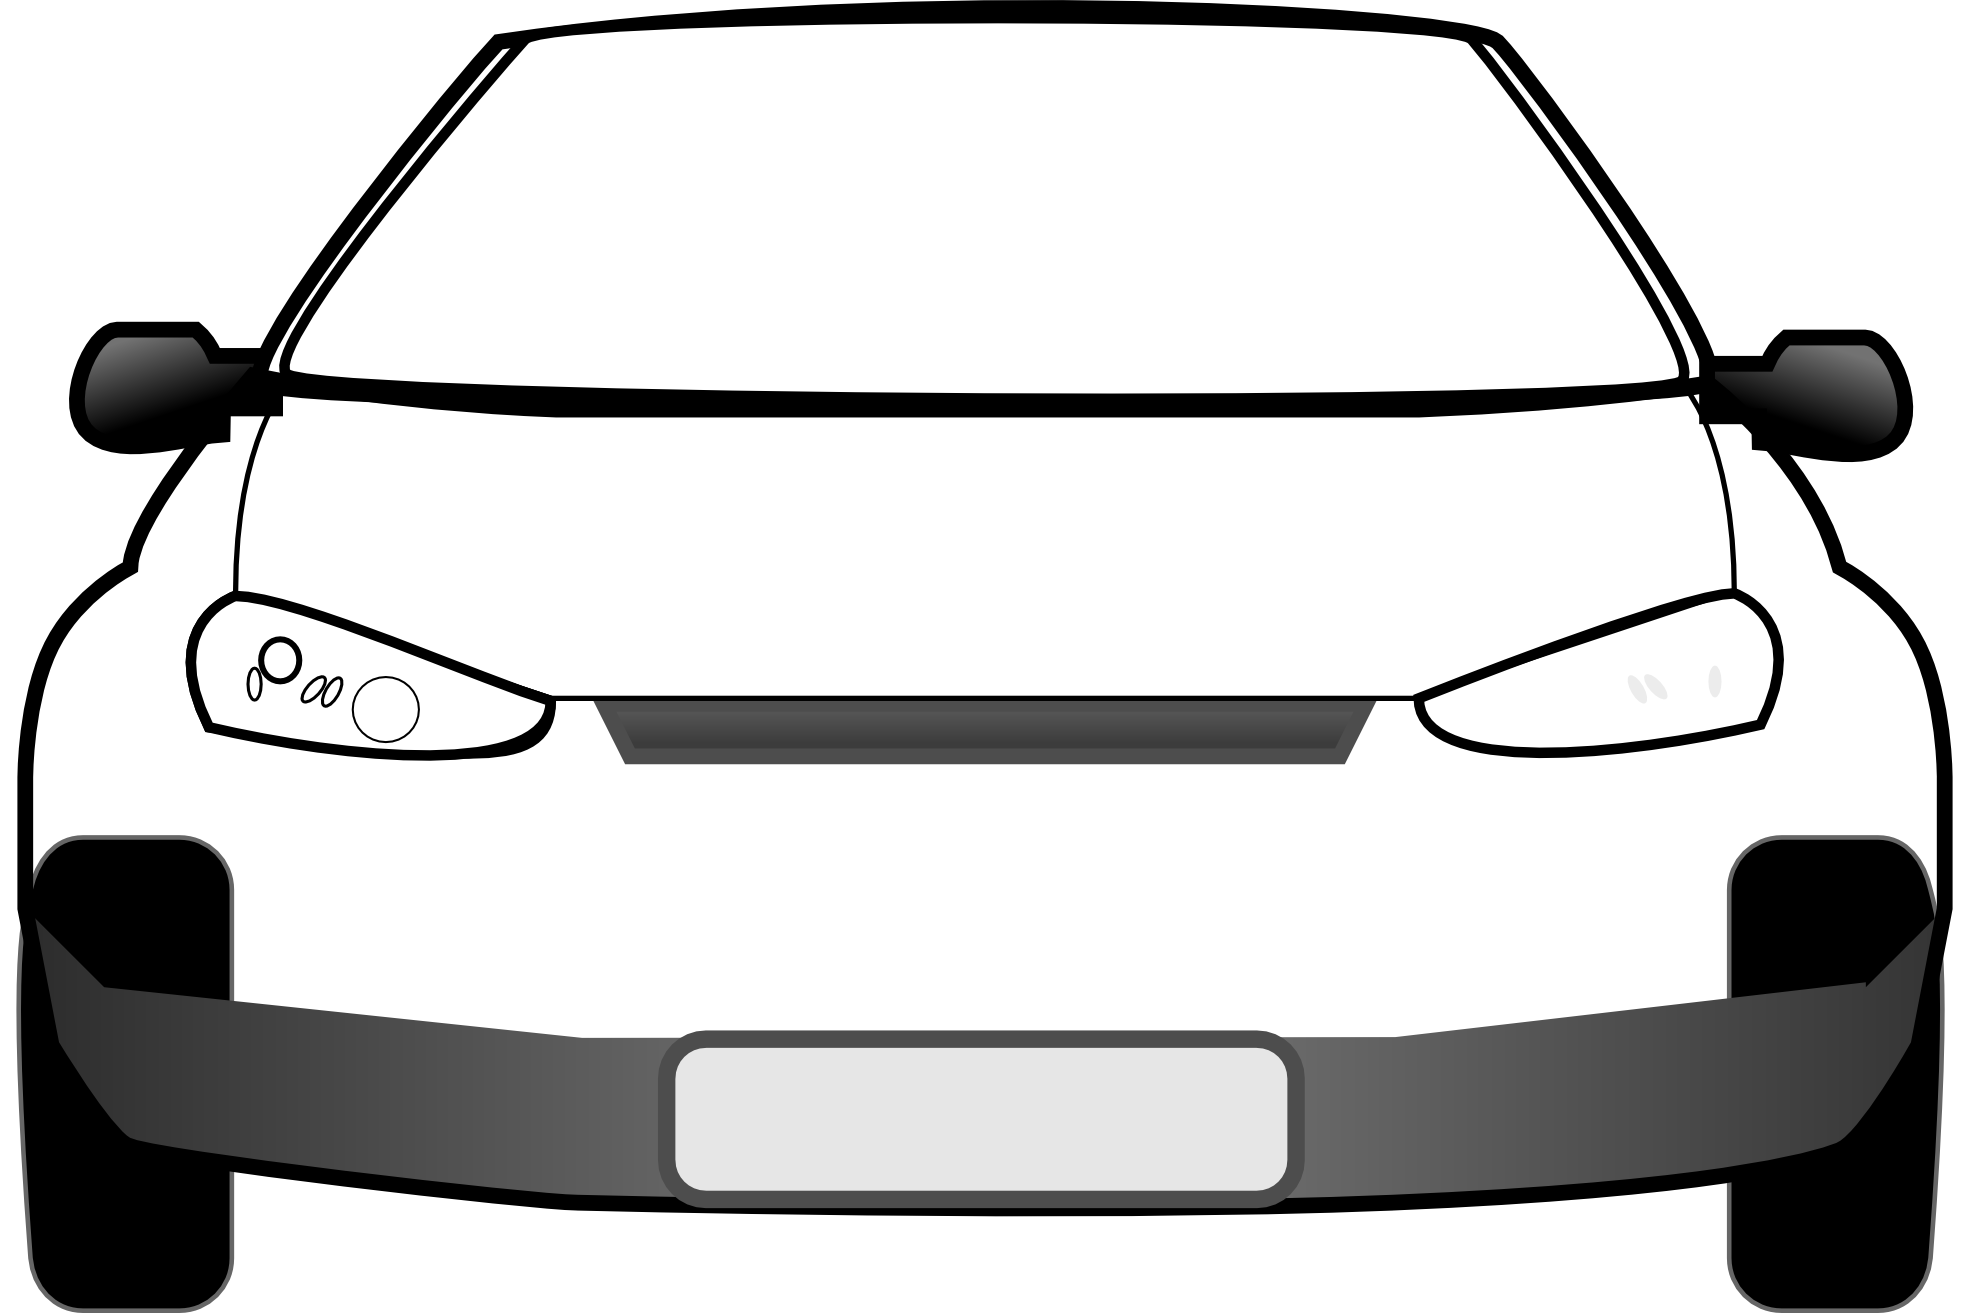 Car front vector clipart free stock Free Car Vector, Download Free Clip Art, Free Clip Art on Clipart ... free stock